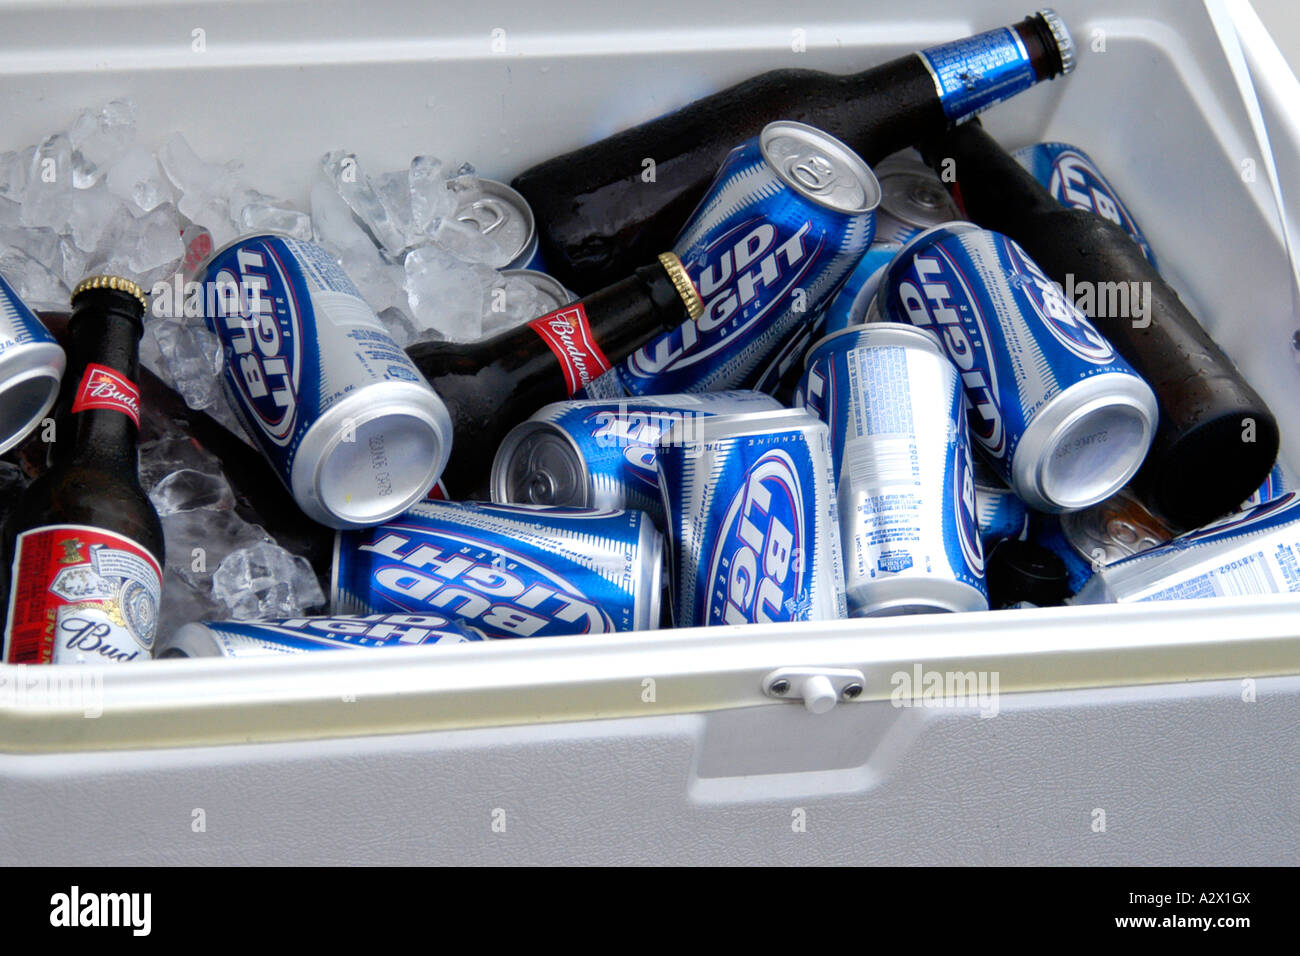 Cans and bottles of beer in an cooler box filled with ice. - Stock Image